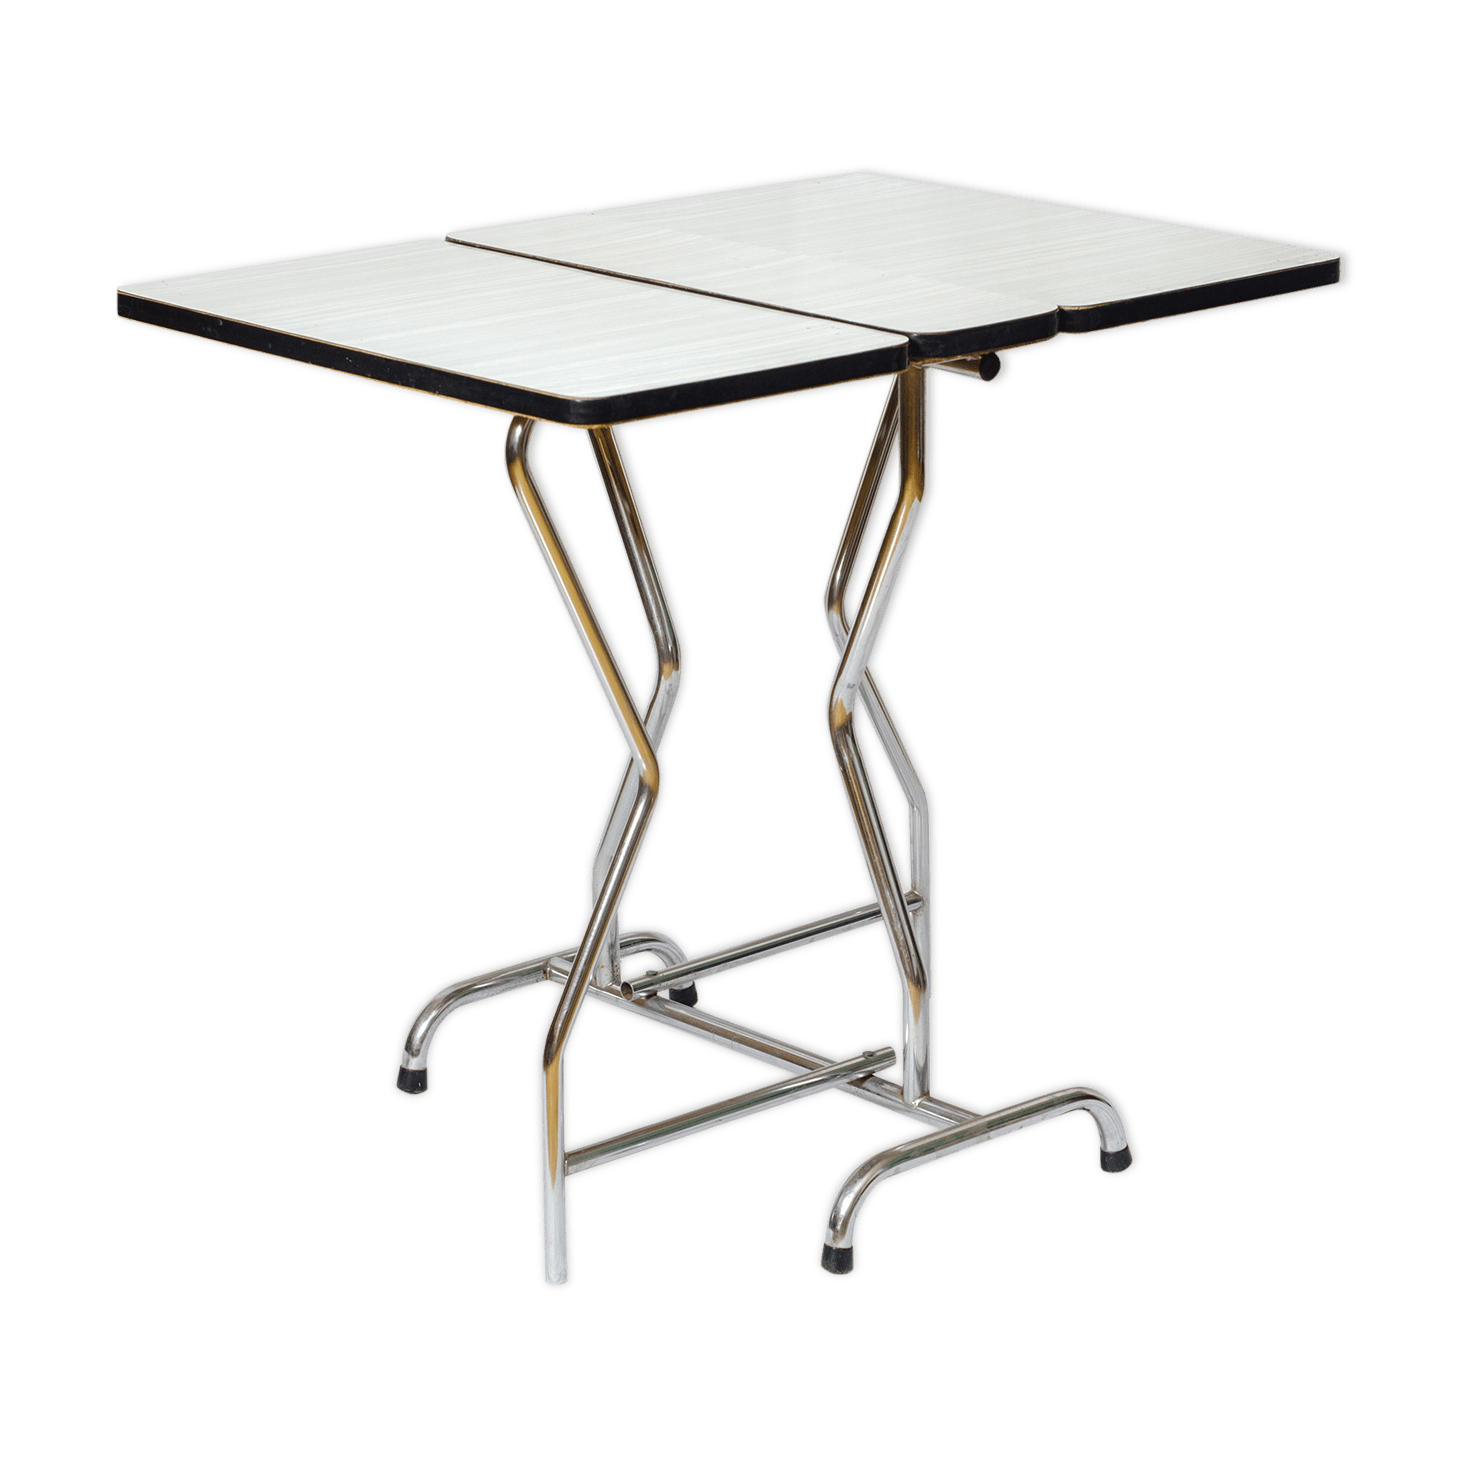 Tables Pliantes Carrefour Table Pliante Formica Great Table Pliante En Formica